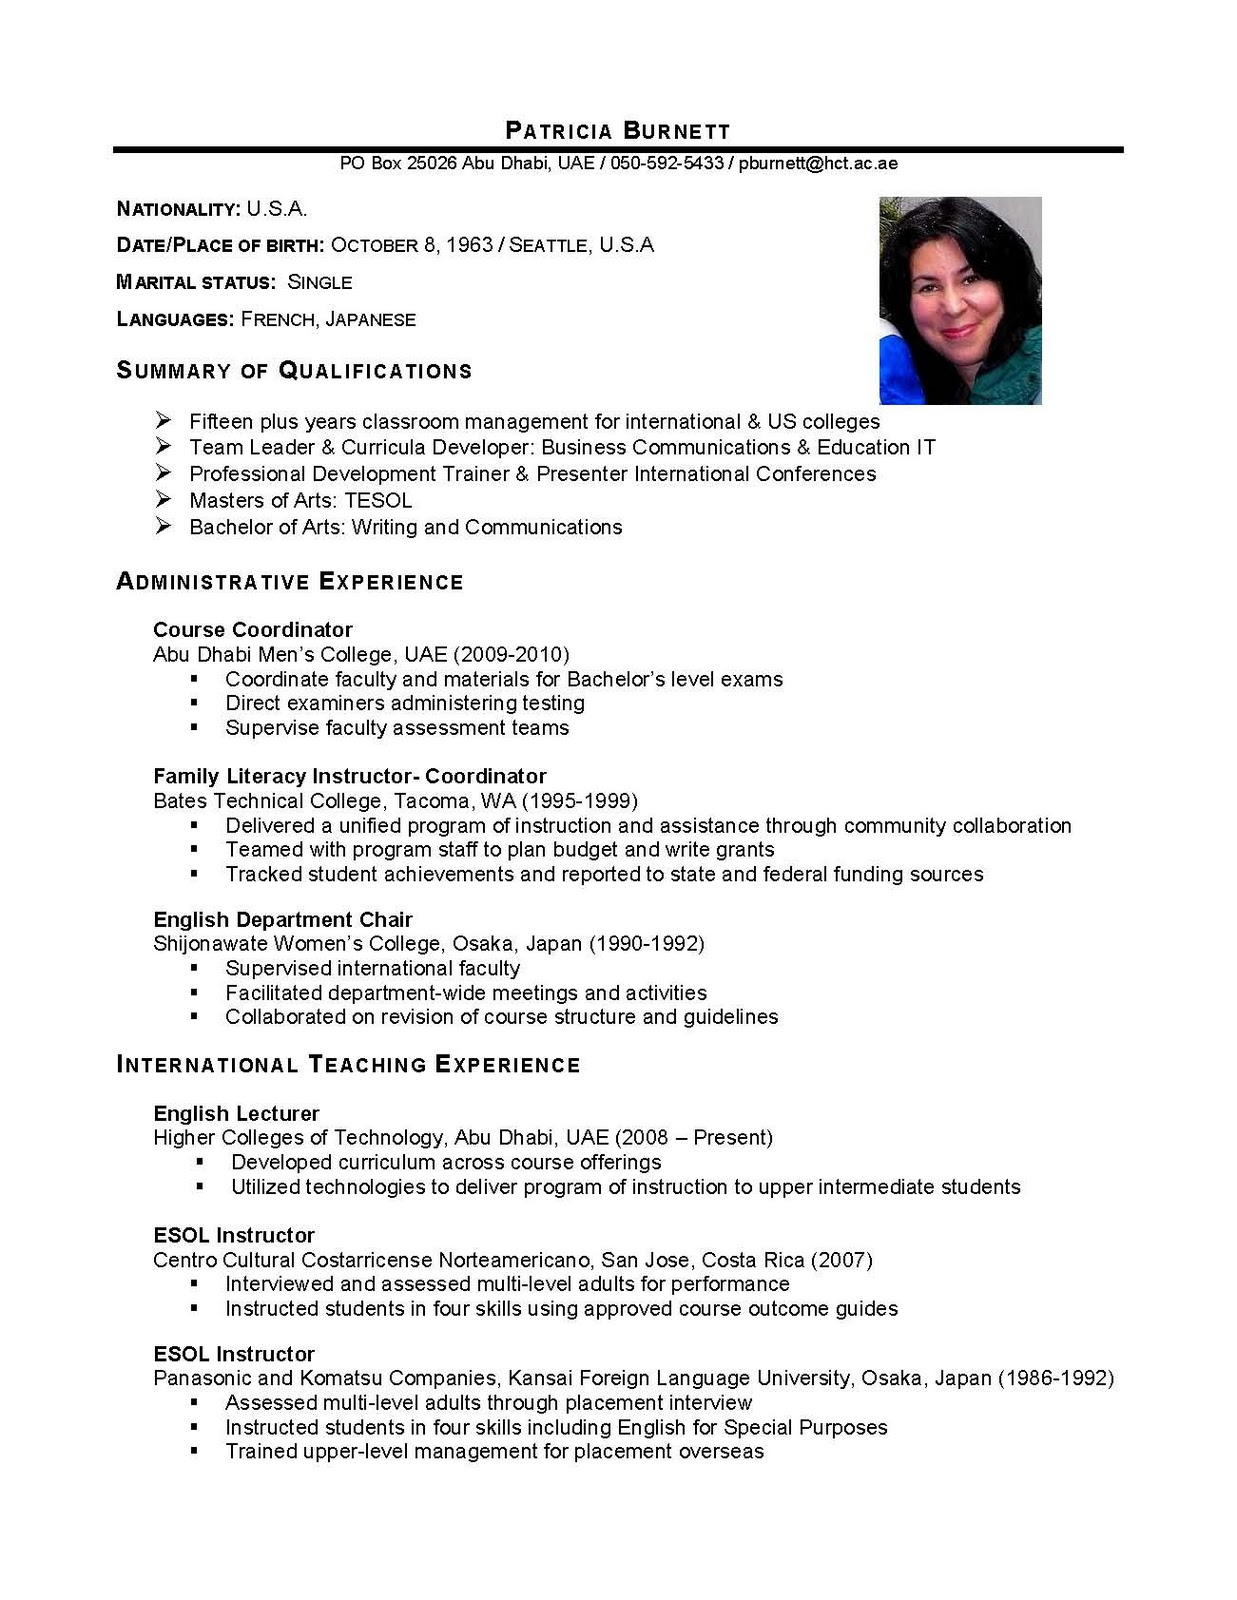 Sample Curriculum Vitae Three Image transvall